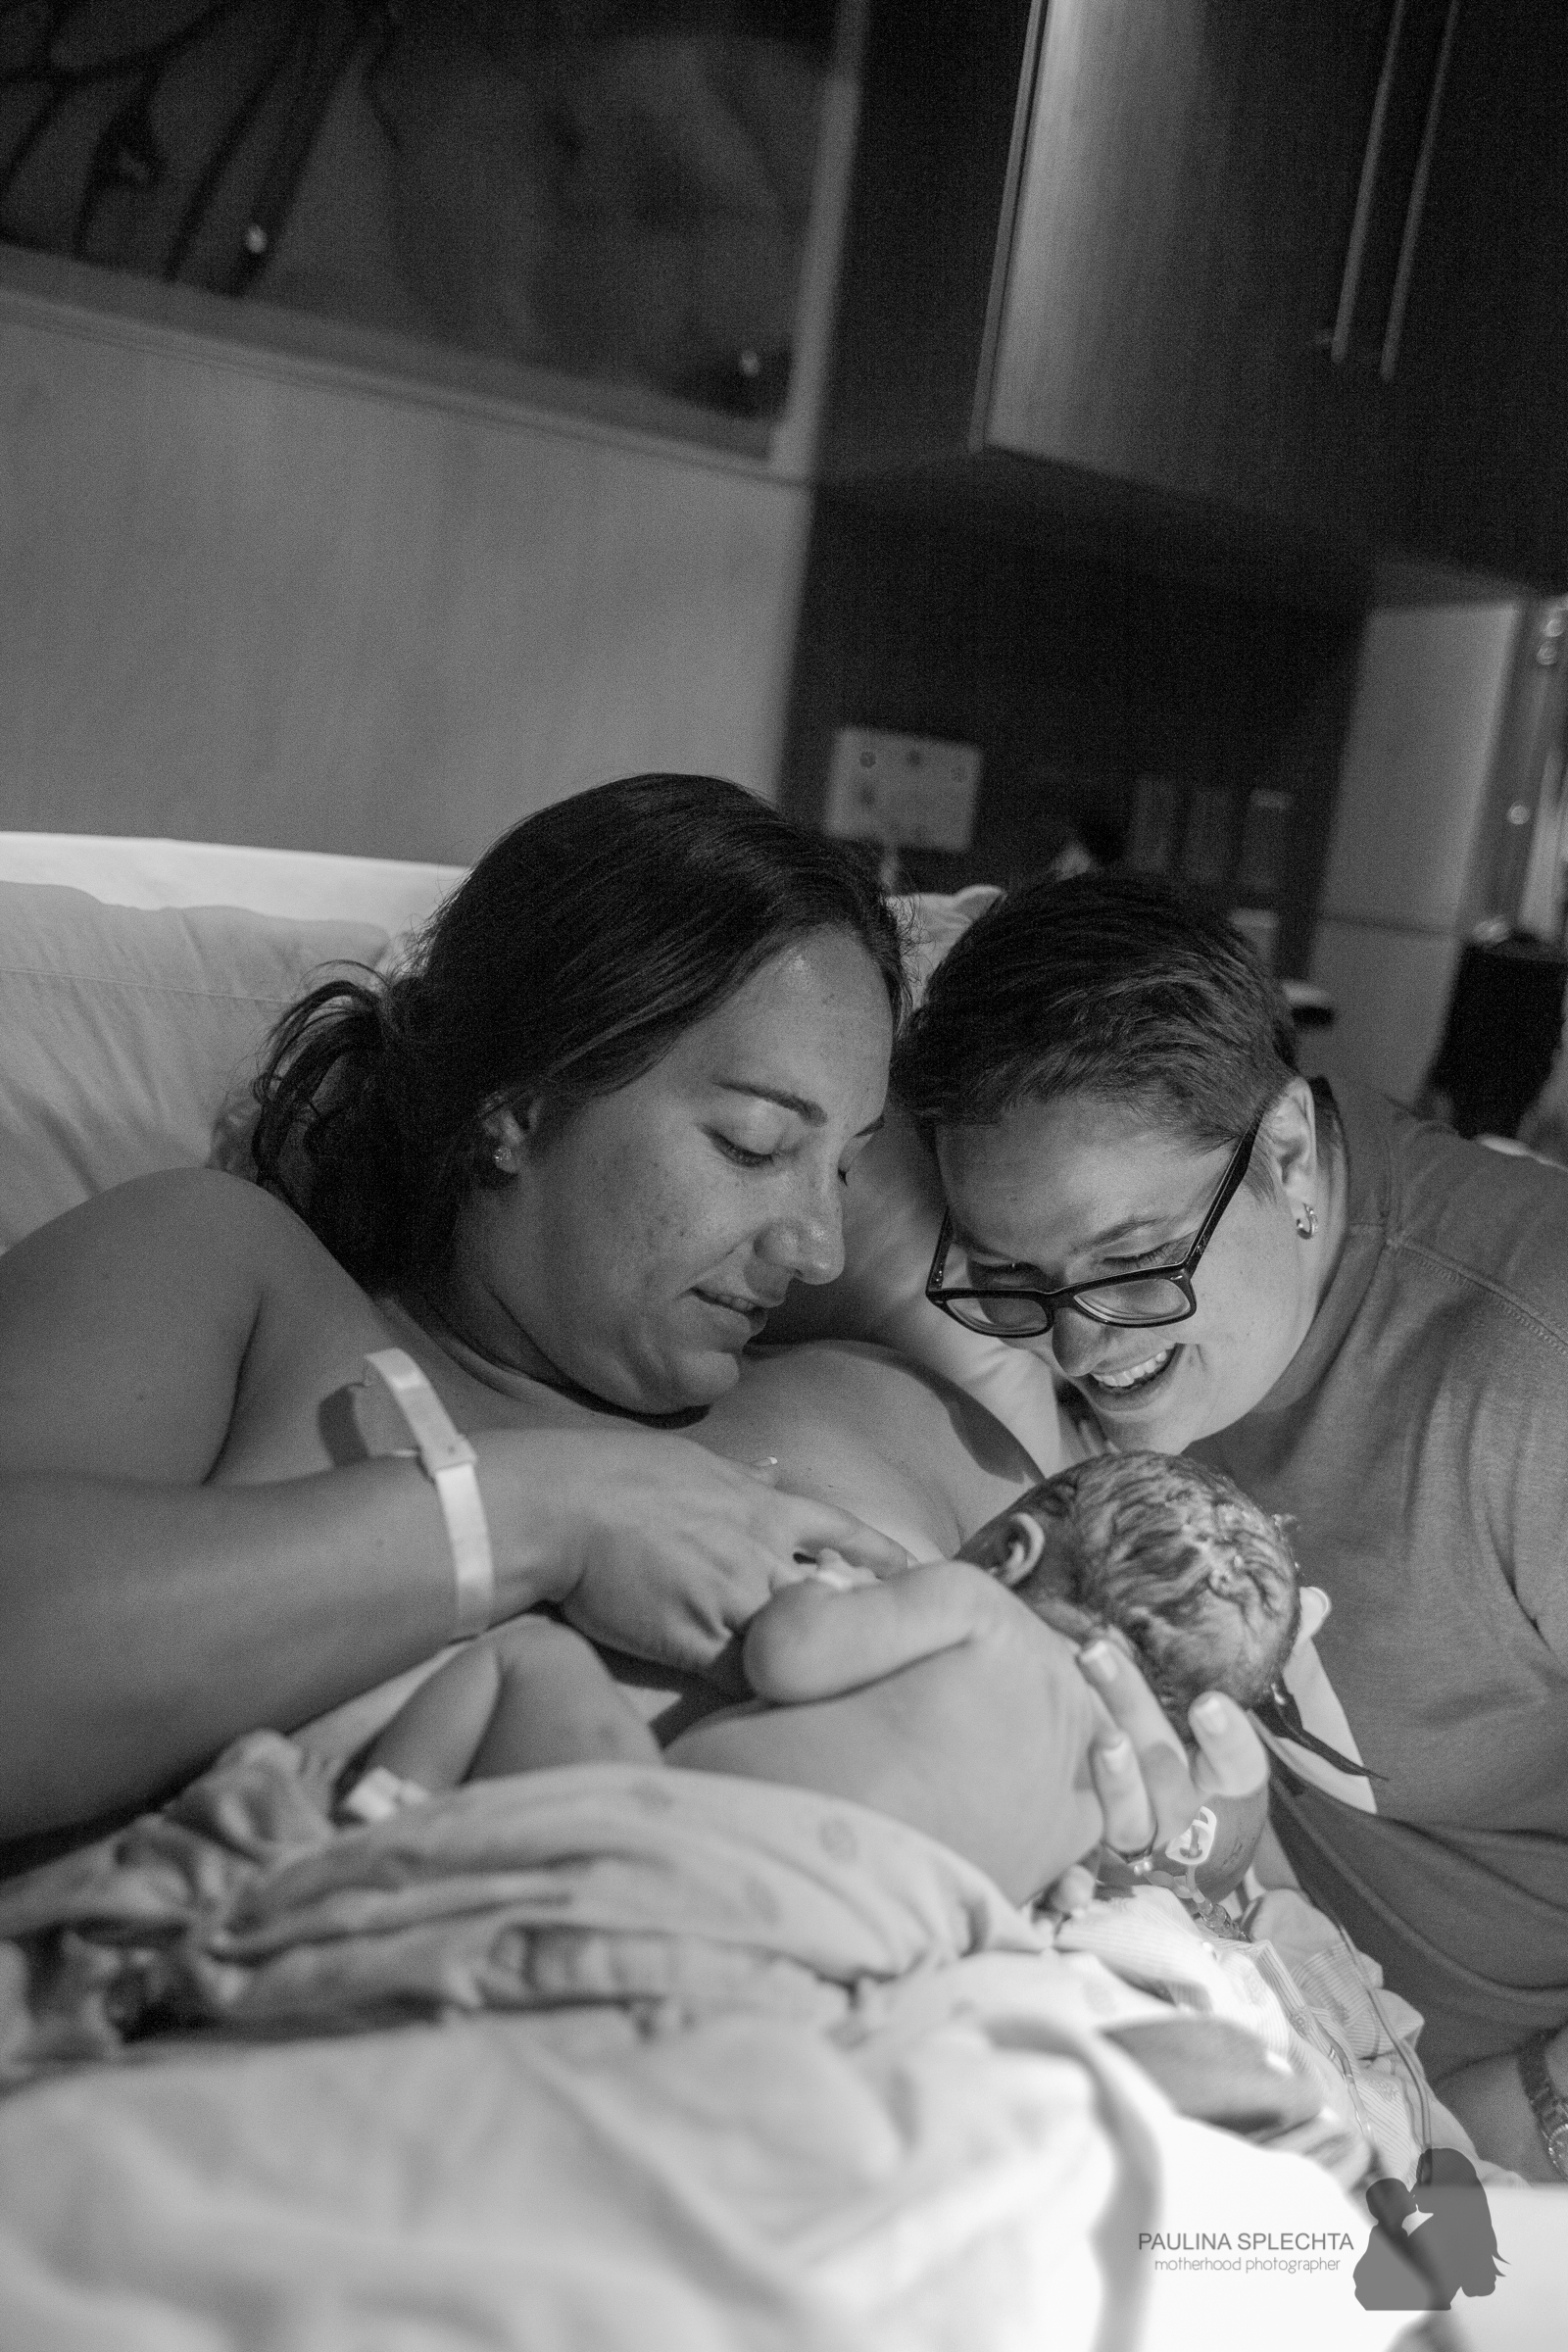 bocabirthphotographer-boca-birth-photographer-birth-center-hospital-hypnobirthing-midwife-doula-trimester-breastfeeding-florida-hollywood-delray-stop-nausea-morning-sickness-19.jpg